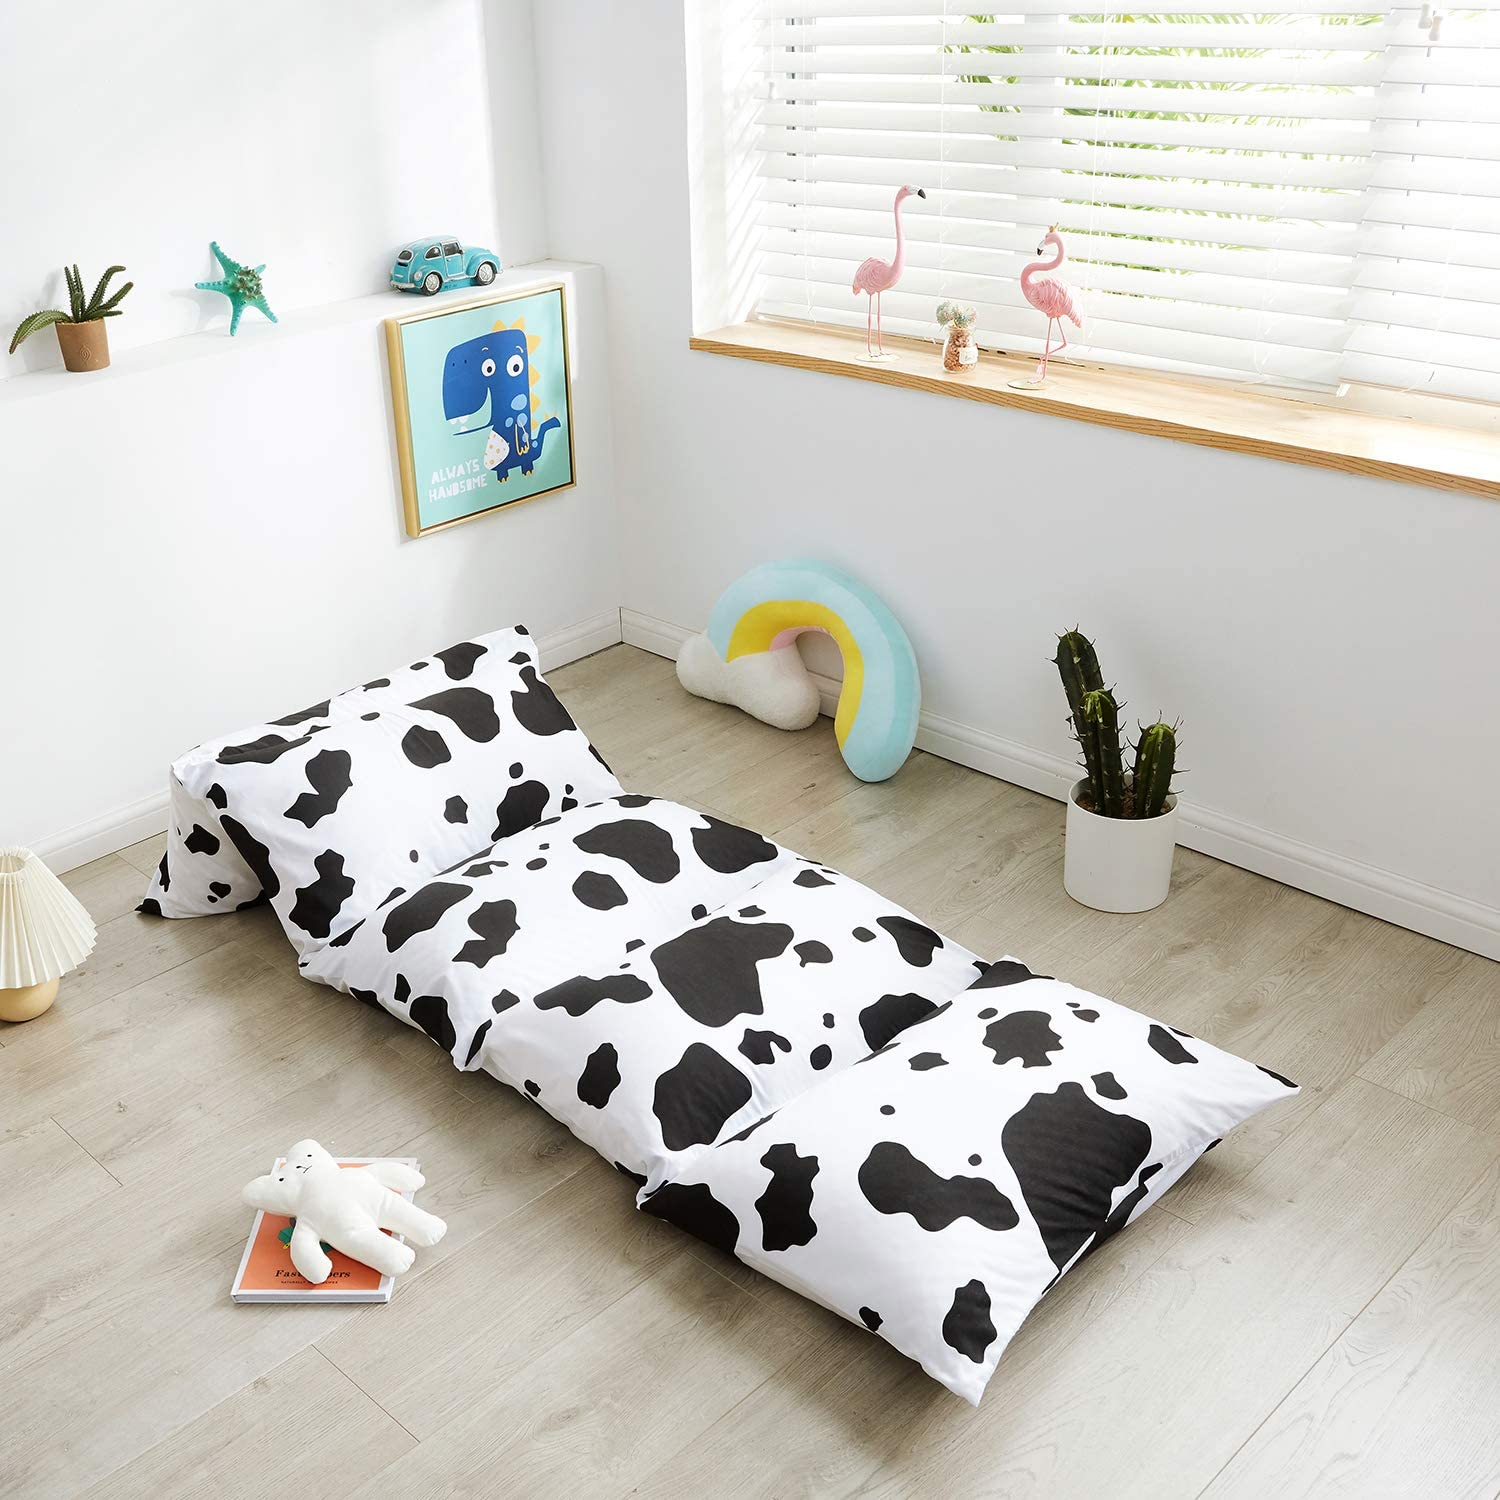 Mengersi Kids Floor Pillow Case Bed Cover,Black White Cow Pattern,Girls Boys Toddler Floor Pillow Cover, Requires 5 Pillows (Pillows Not Included) (Queen, Cow)